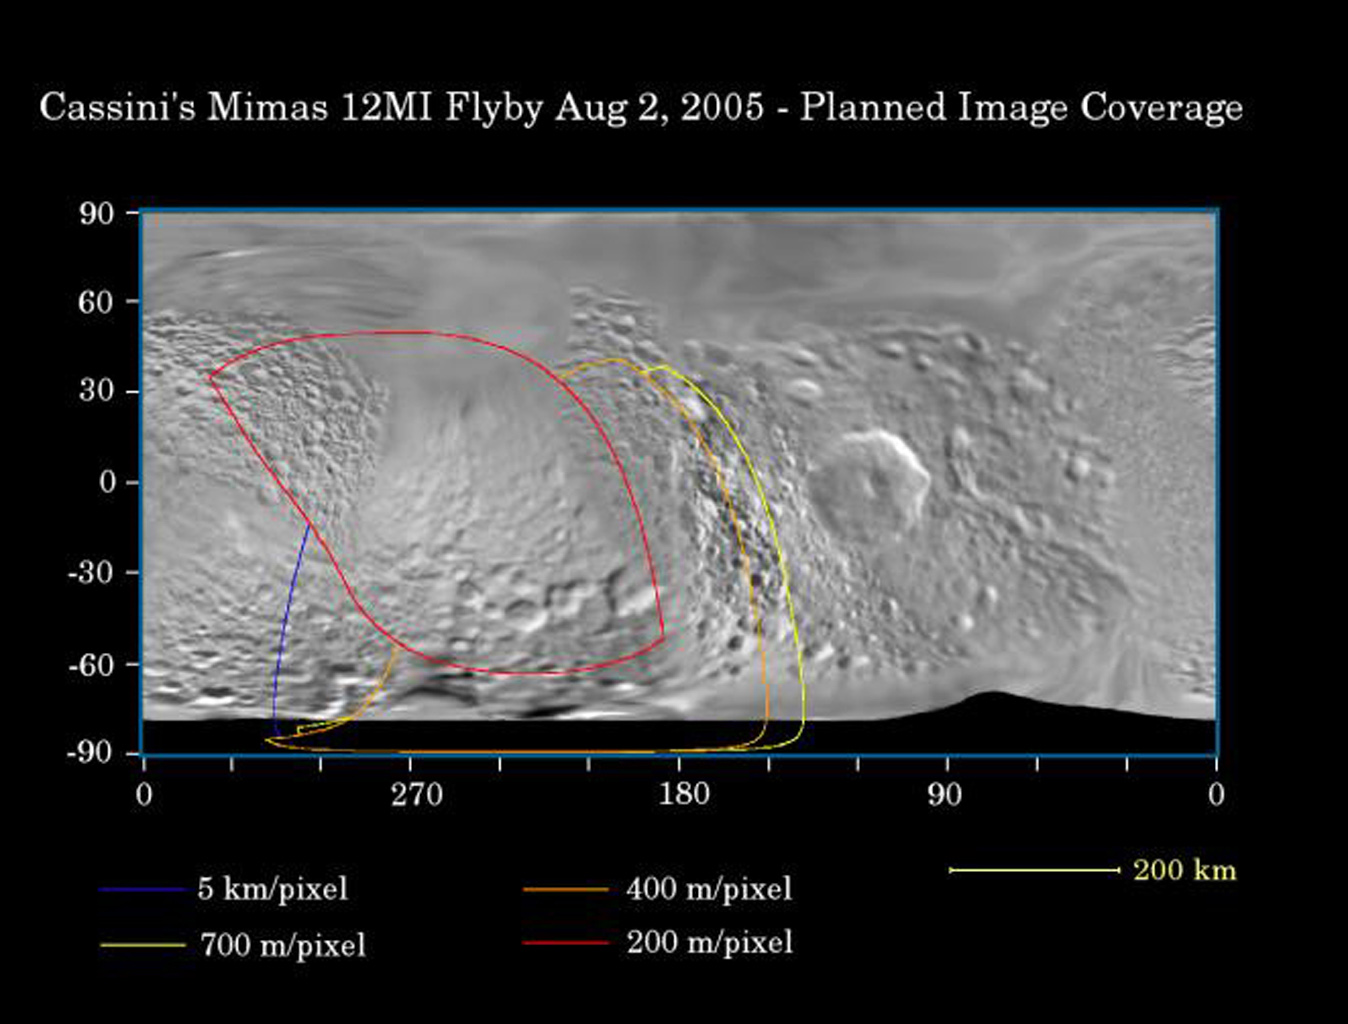 This map of the surface of Saturn's moon Mimas illustrates the regions that were imaged by NASA's Cassini spacecraft during the spacecraft's flyby of the moon on Aug. 2, 2005.